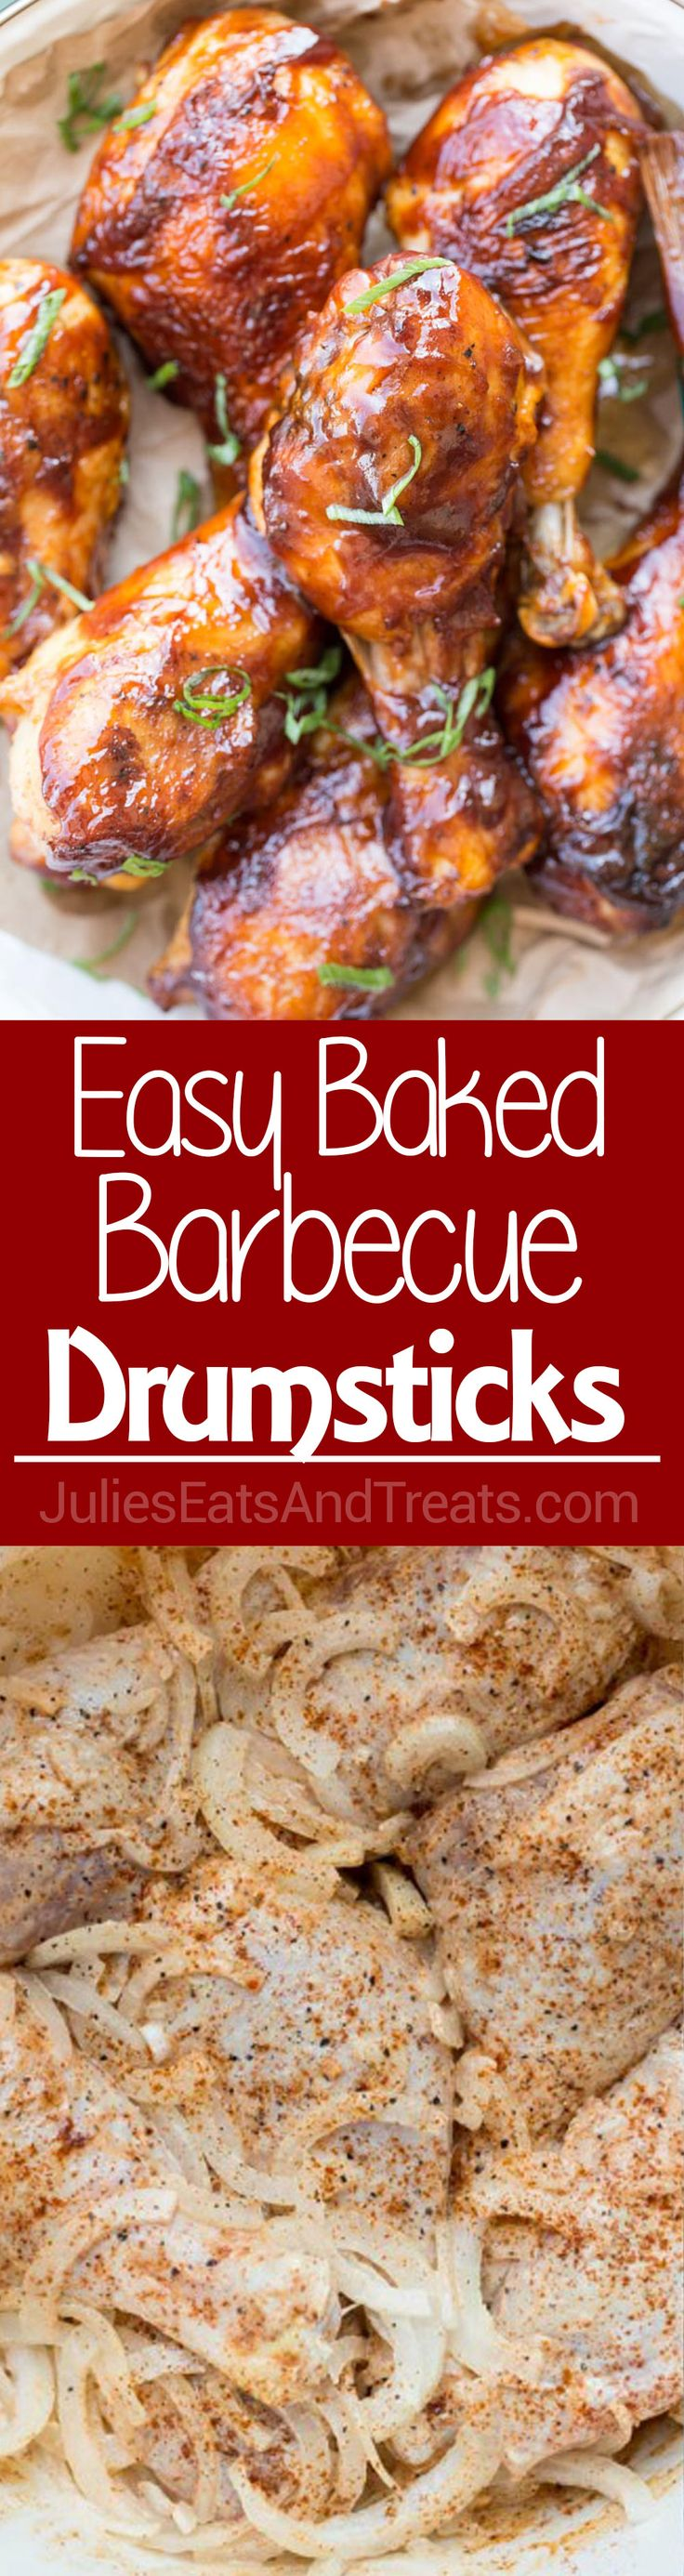 Easy Baked Barbecue Chicken Drumsticks ~ Marinated Drumsticks Make an Easy Dinner Recipe! Bake them and Finish with Barbecue Sauce for Juicy, Flavorful Drumsticks! ~ http://www.julieseatsandtreats.com